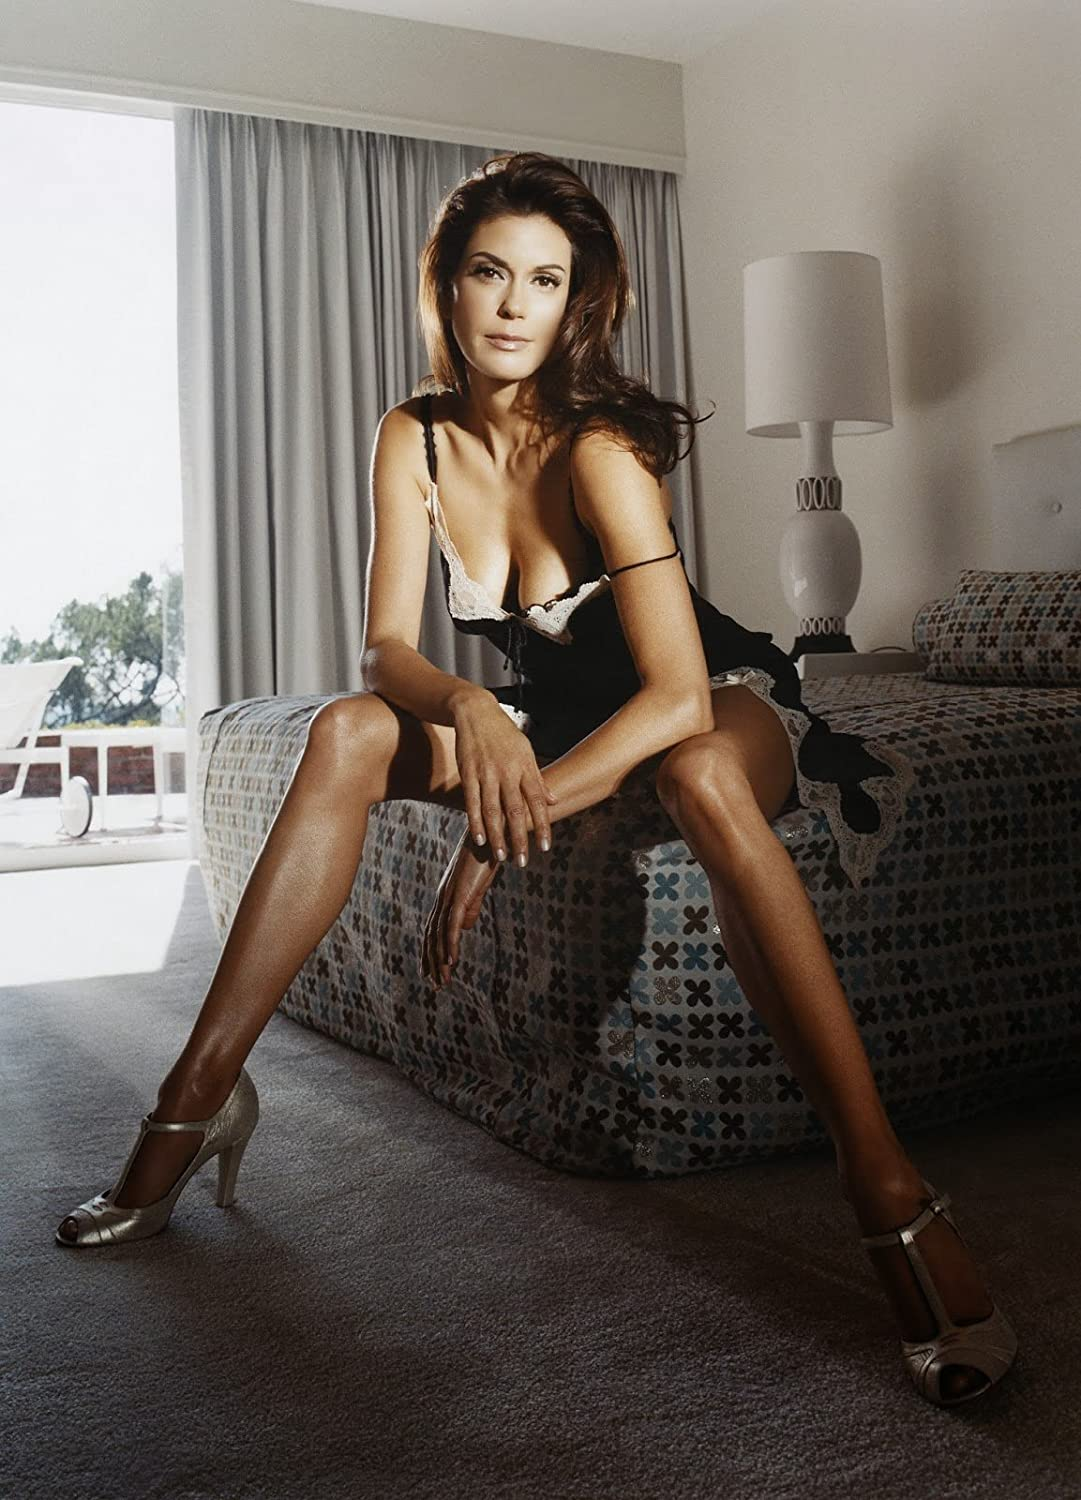 Teri Hatcher Sexy Hot Modeling 8 Inch X 10 Inch Photograph At